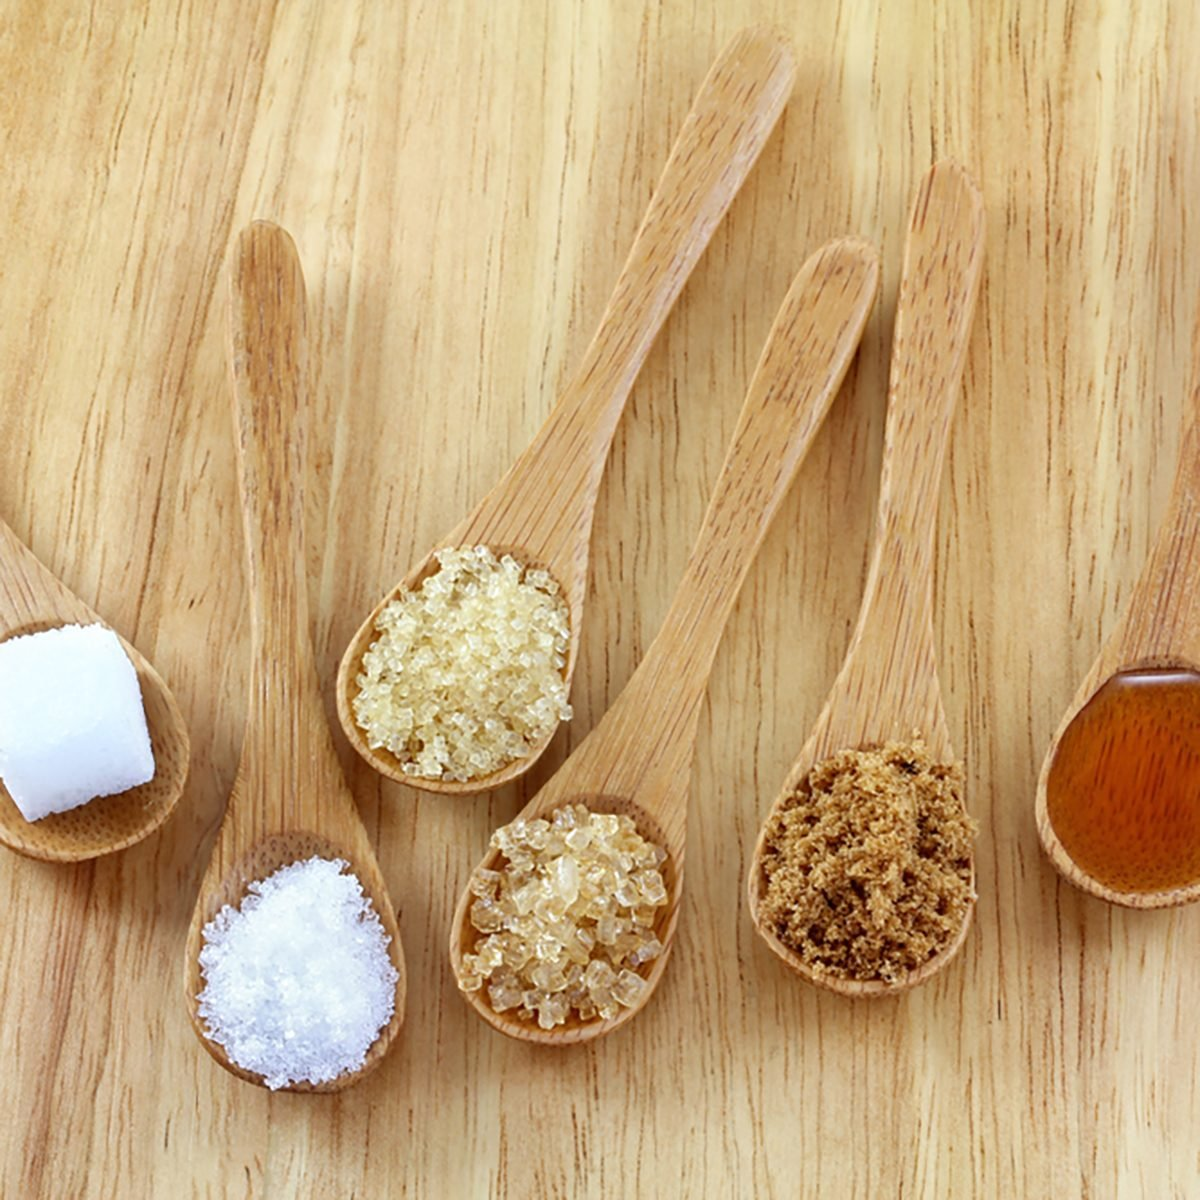 Spoons of different types of sugar, sugar cube, granulated white sugar, granulated light brown sugar, brown sugar crystals, soften brown sugar, honey on the wooden background